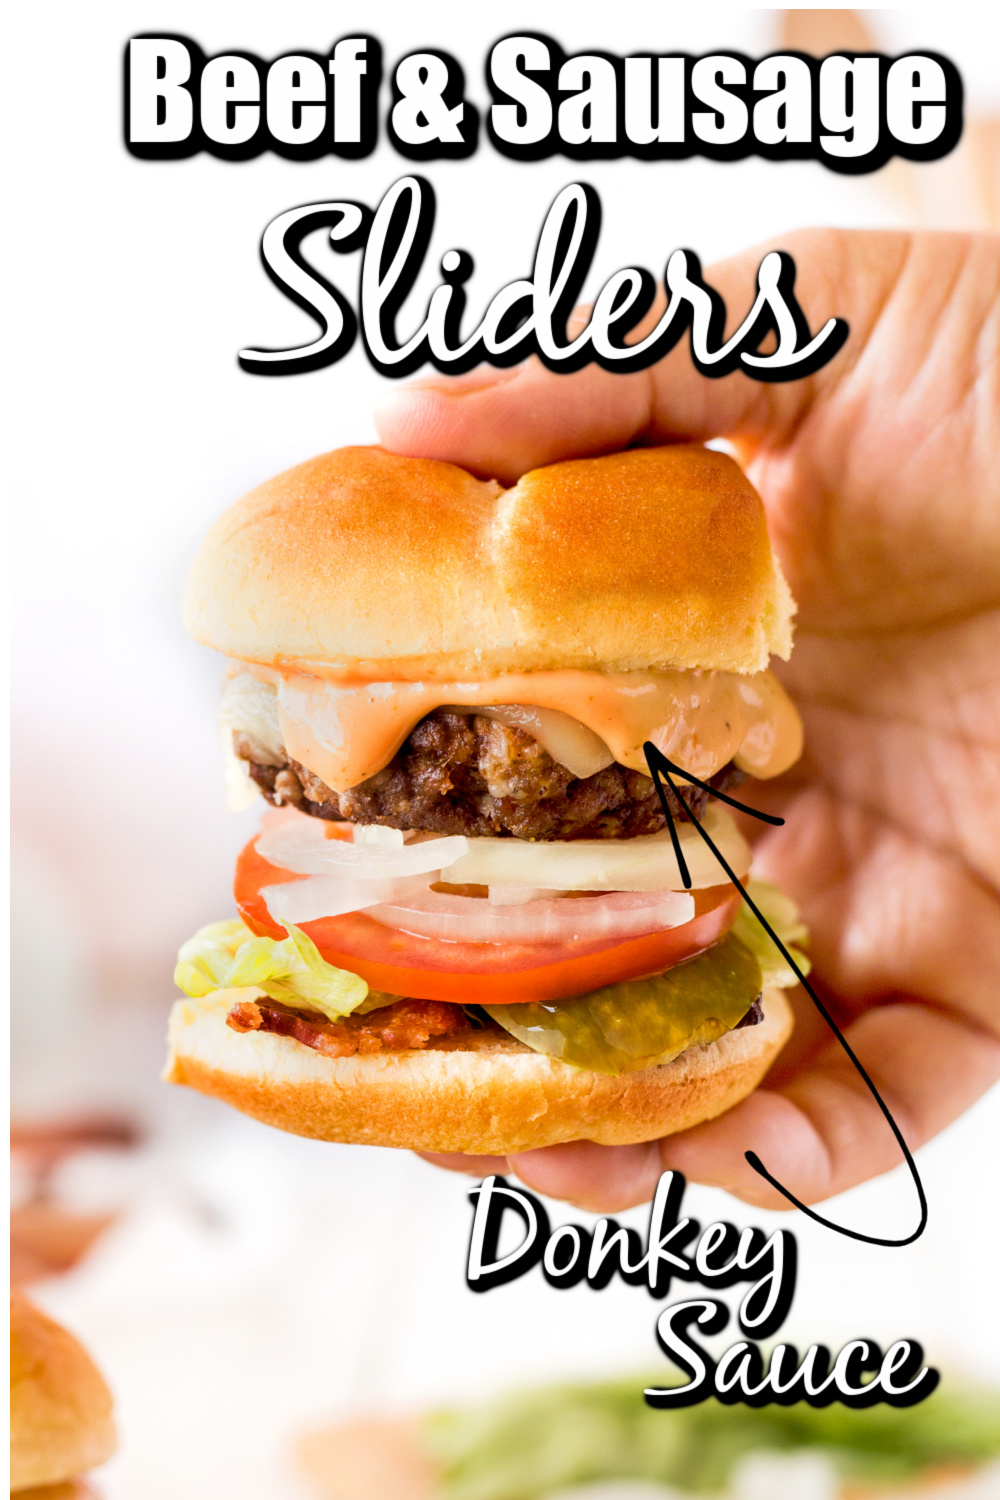 These Beef & Sausage Slider Burgers are perfect. They are quick, easy to make, and awesome with Donkey Sauce, the perfect sauce for a slider burger!